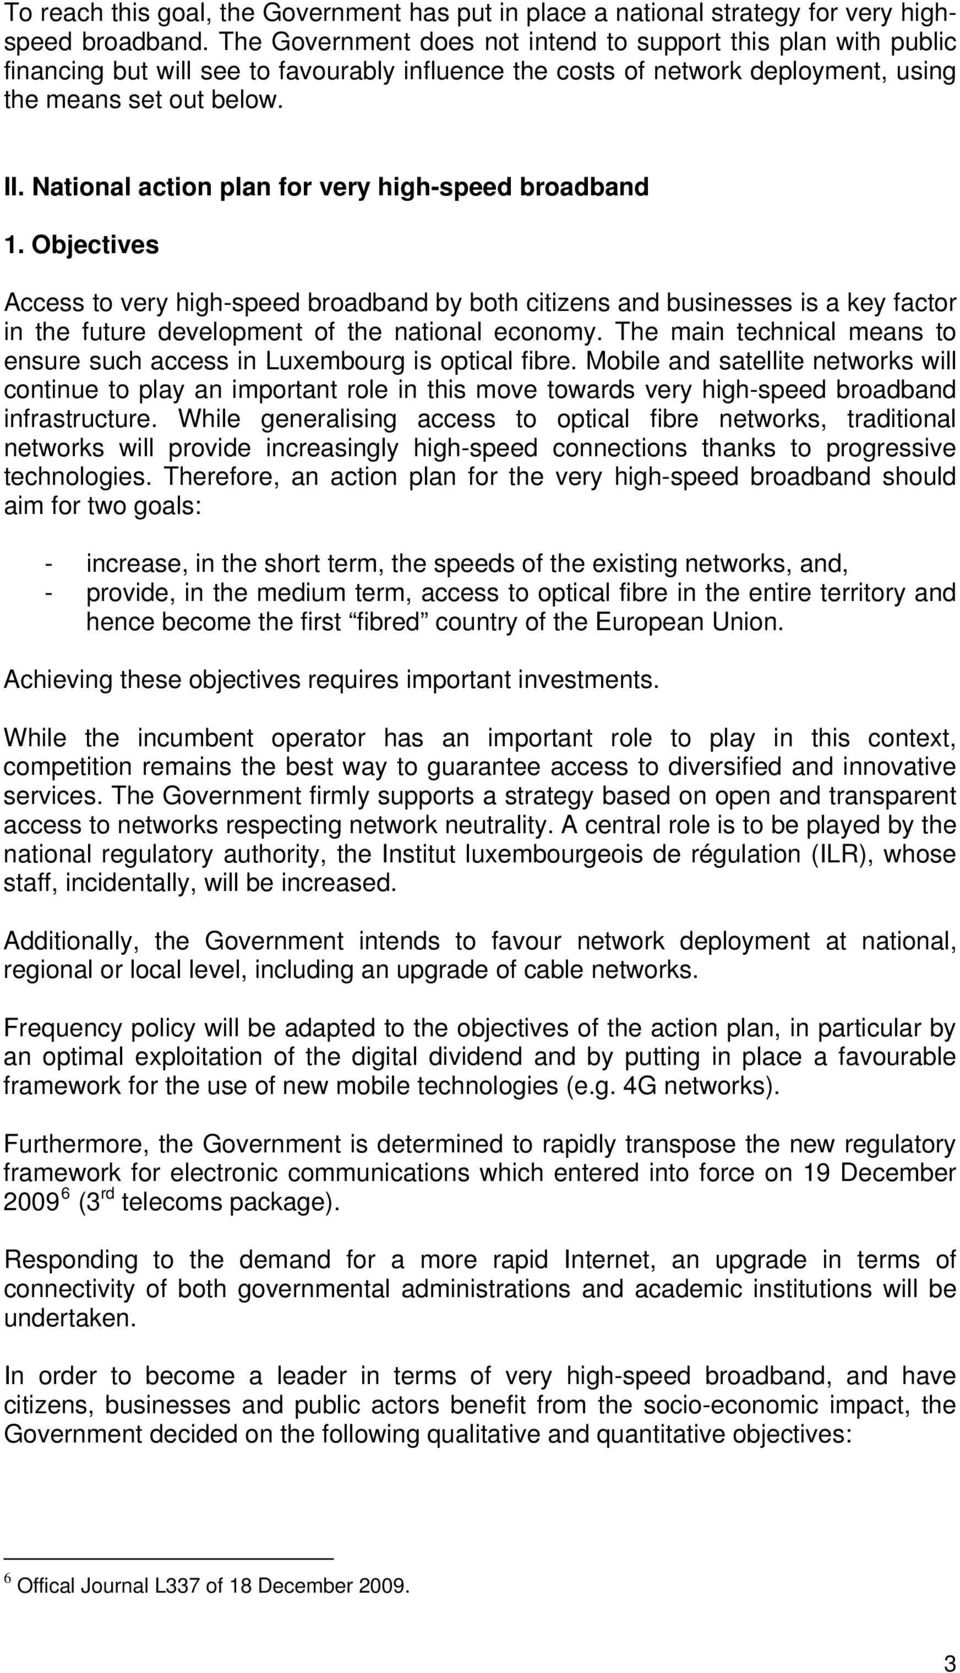 National action plan for very high-speed broadband 1. Objectives Access to very high-speed broadband by both citizens and businesses is a key factor in the future development of the national economy.